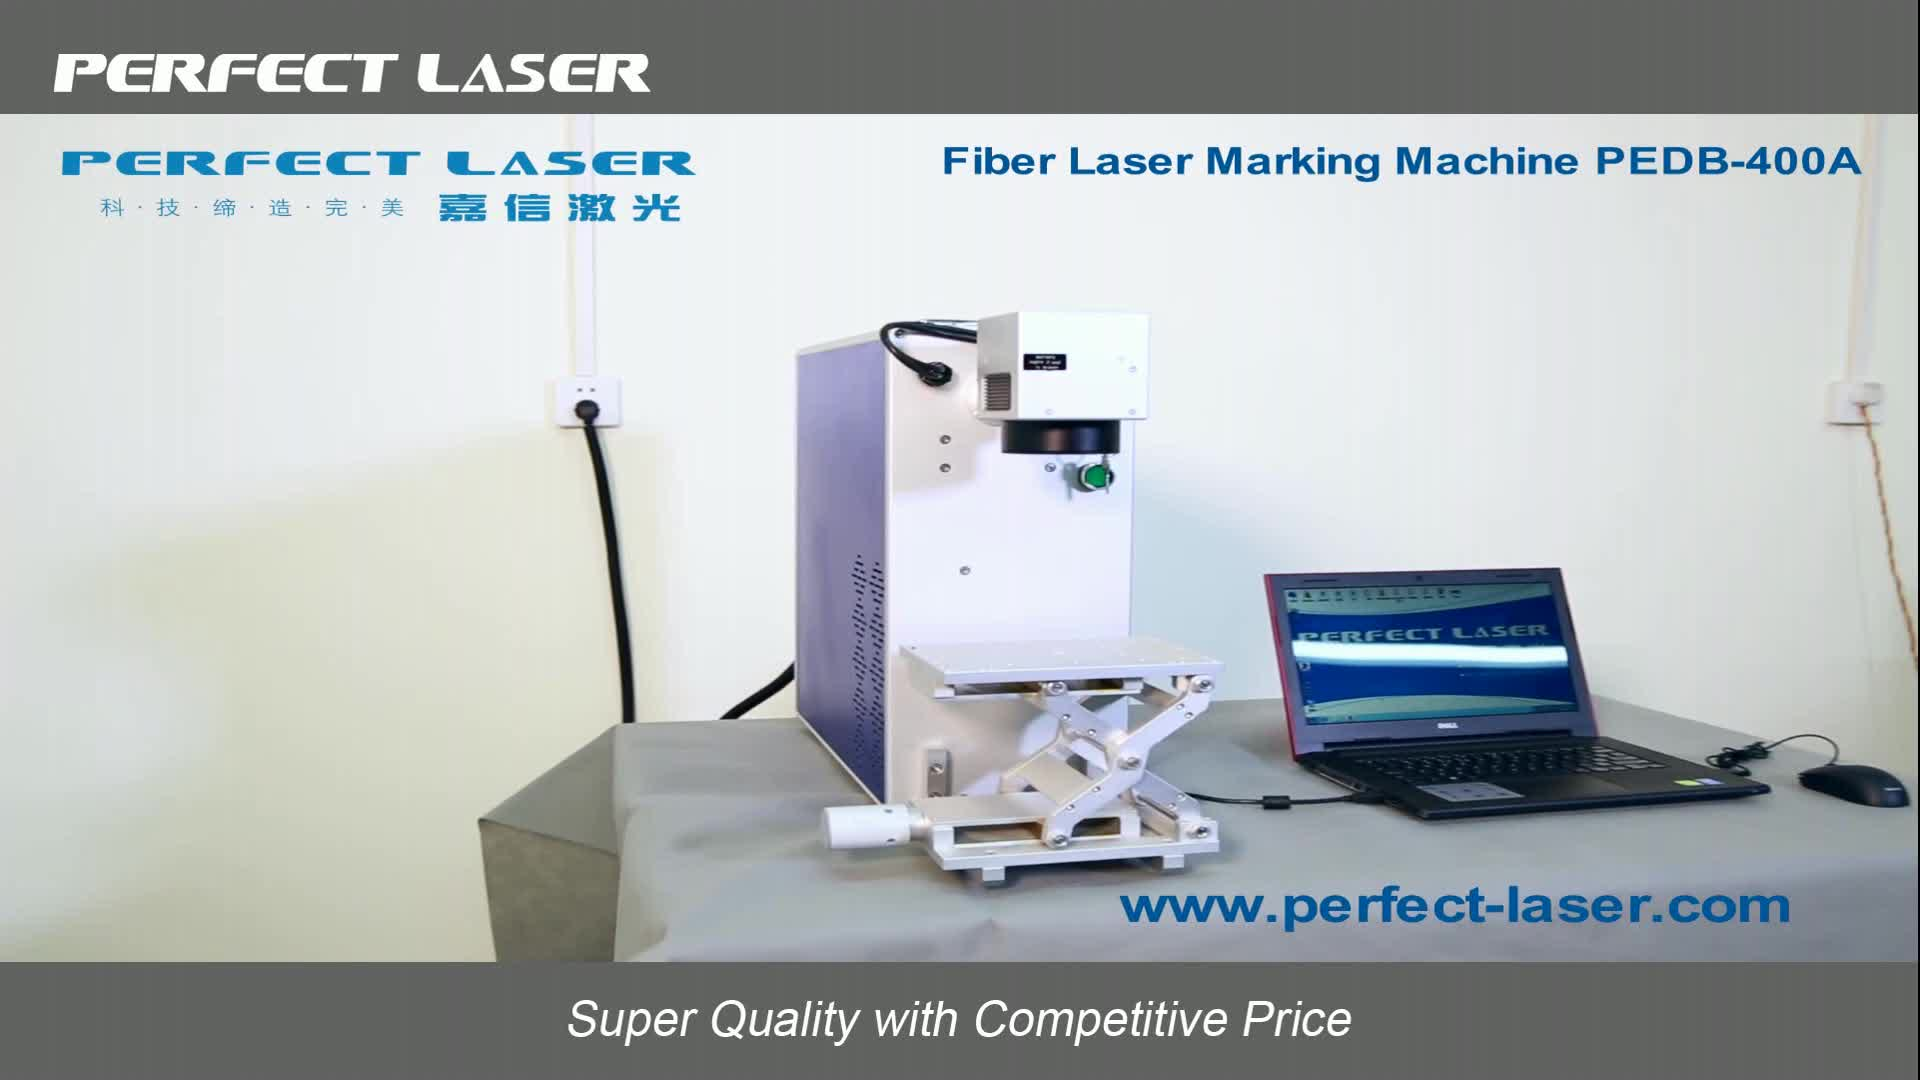 fiber ring laser thesis A novel multi-longitudinal-mode fiber ring laser temperature sensor based on the beat frequency demodulation technology is presented the beat frequency between any two modes varies linearly with the temperature.